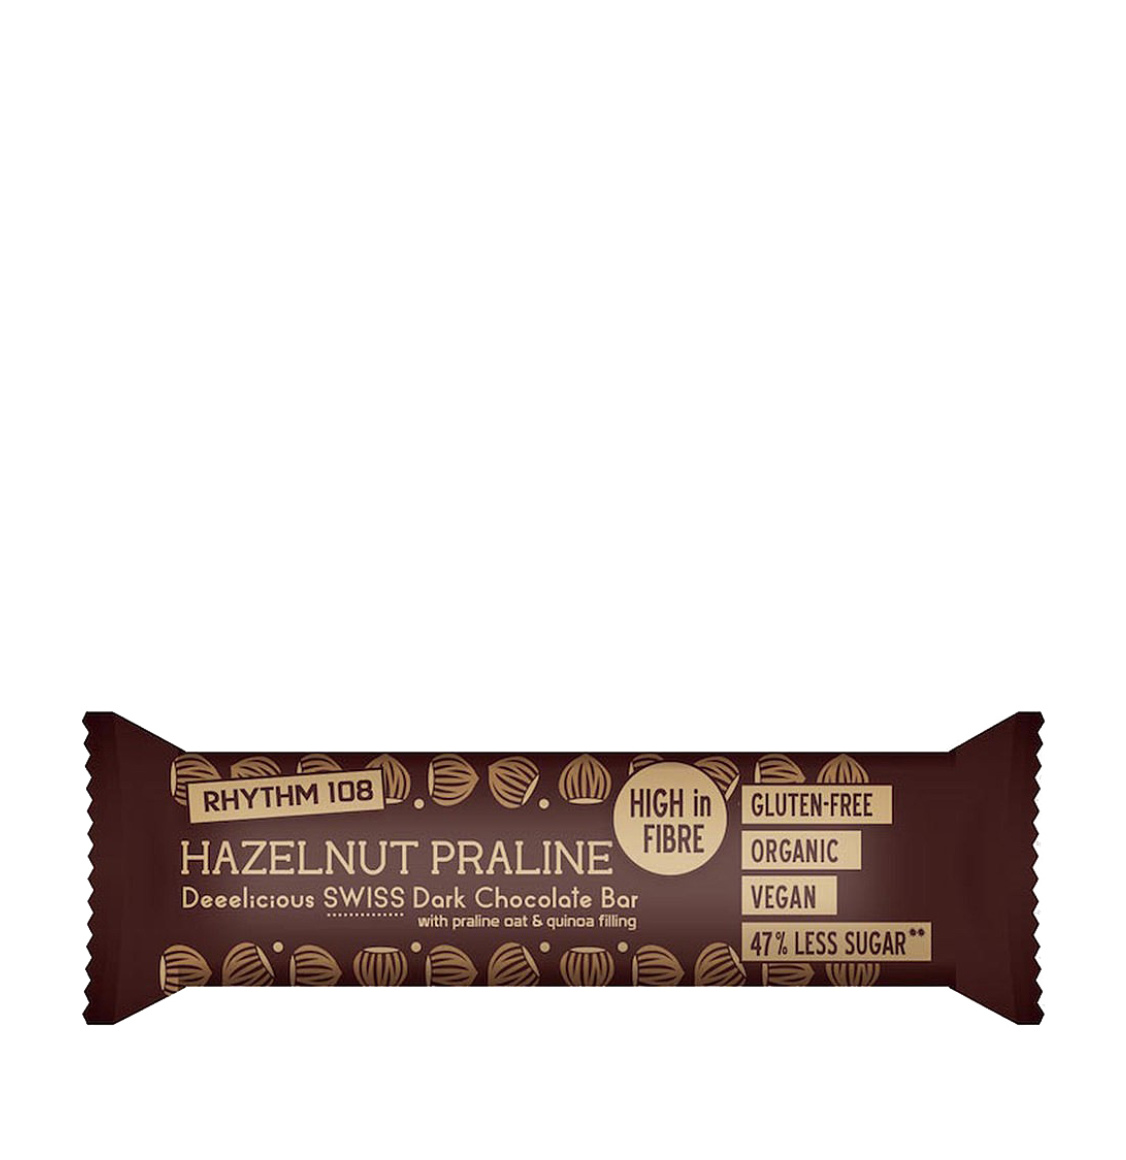 Rhythm 108 Hazelnut Praline Swiss Chocolate Bar 4 x 33g